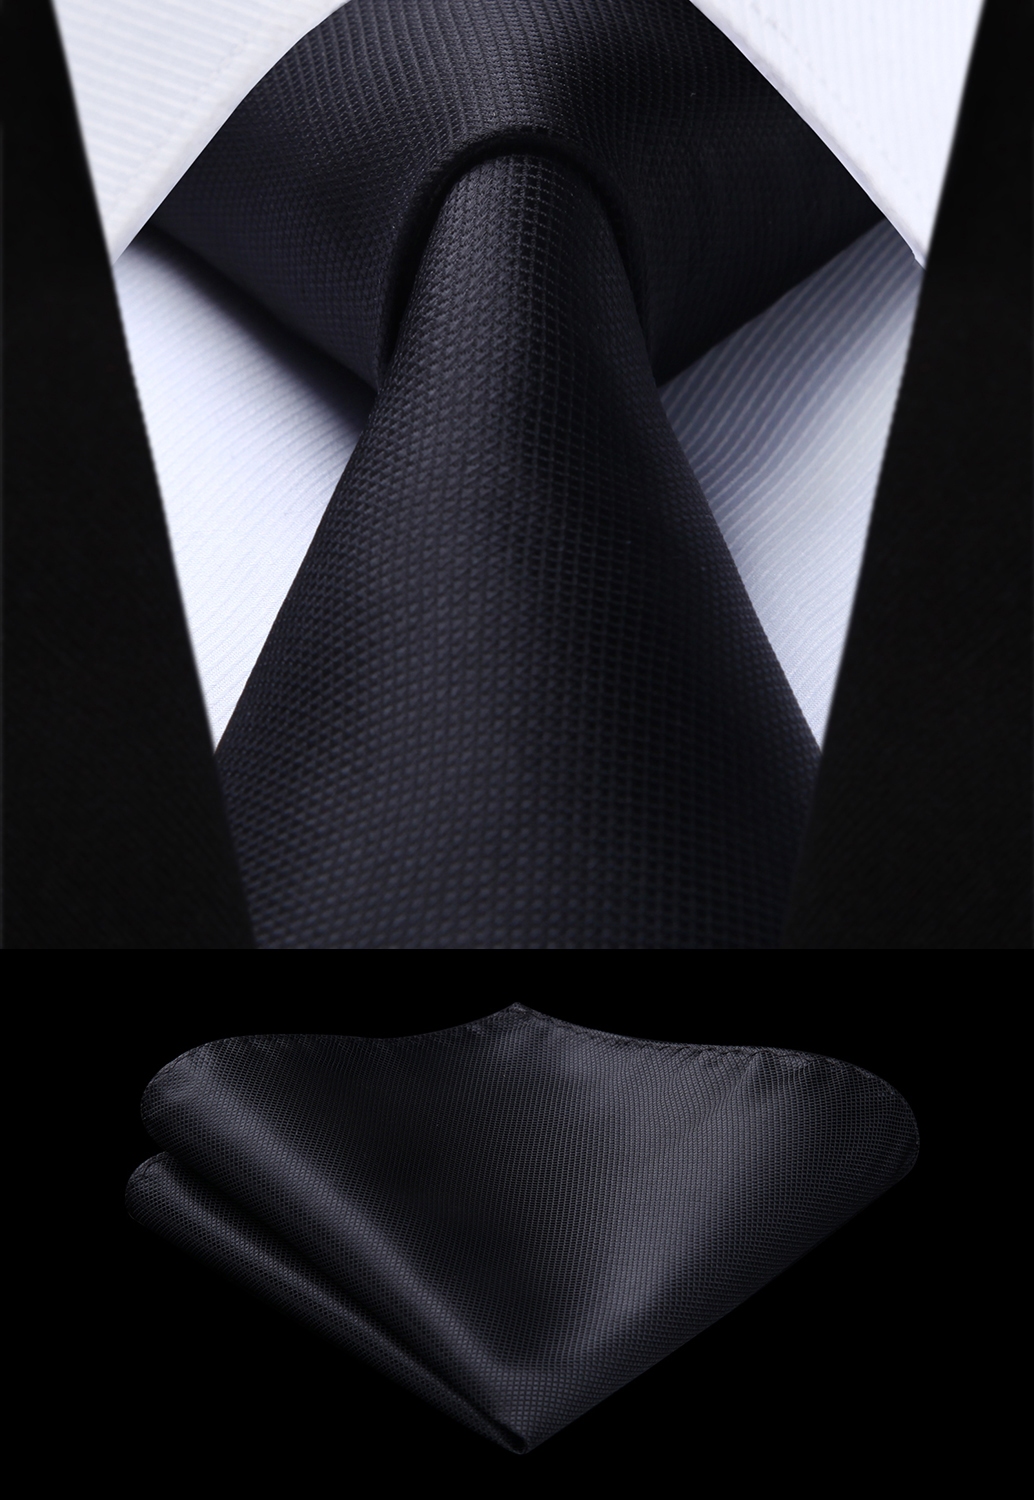 Woven Men Black Tie Plaid & Check Necktie Handkerchief Set#TC626L8S Party Wedding Classic Fashion Pocket Square Tie